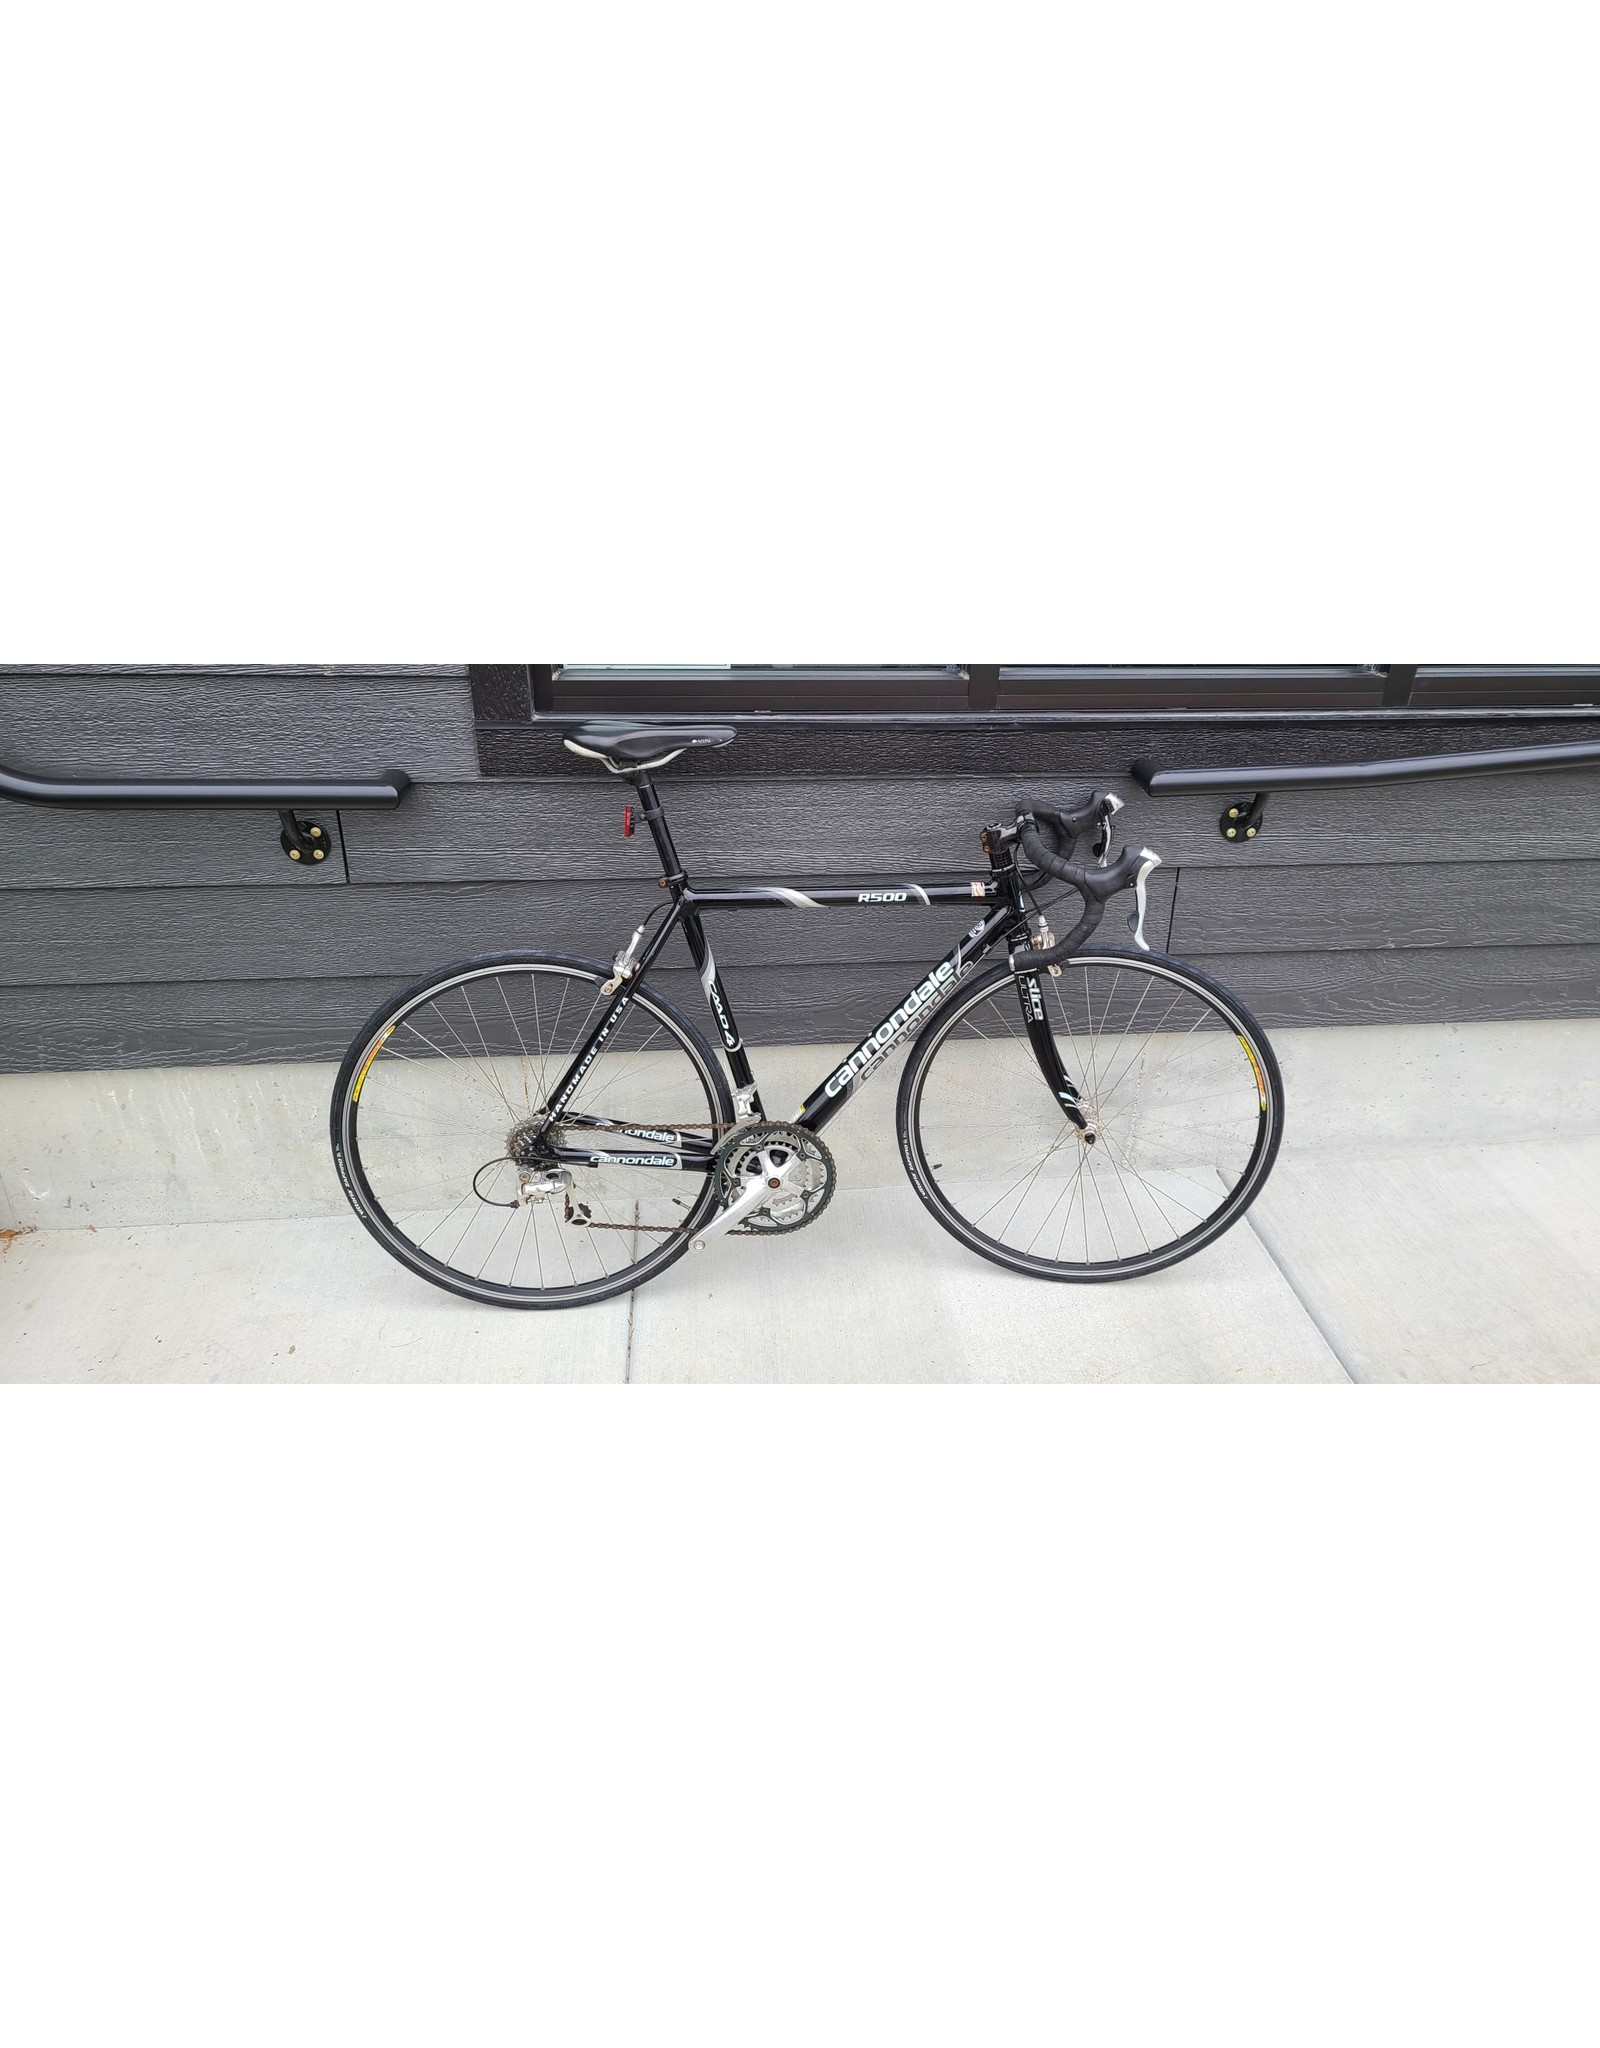 Cannondale R500 caad4